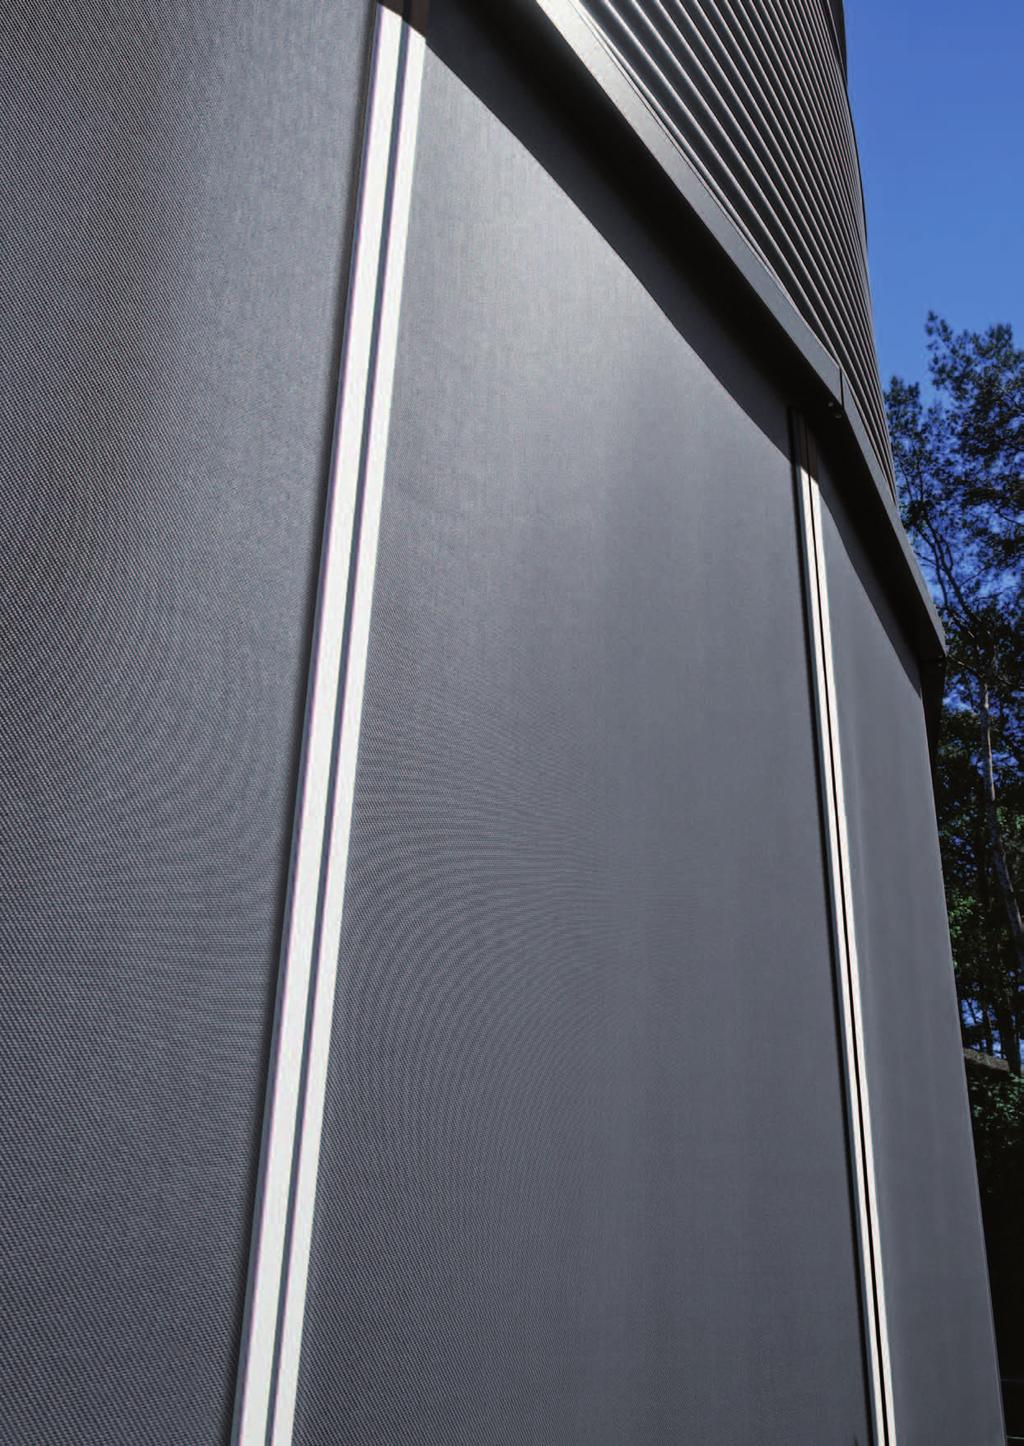 Ultimate Screen ZIP Windproof Roller Blinds HunterDouglas Ultimate Screen ZIP Windproof External Roller Blinds offer a high performance solution for heat and light control in more than 99% of common